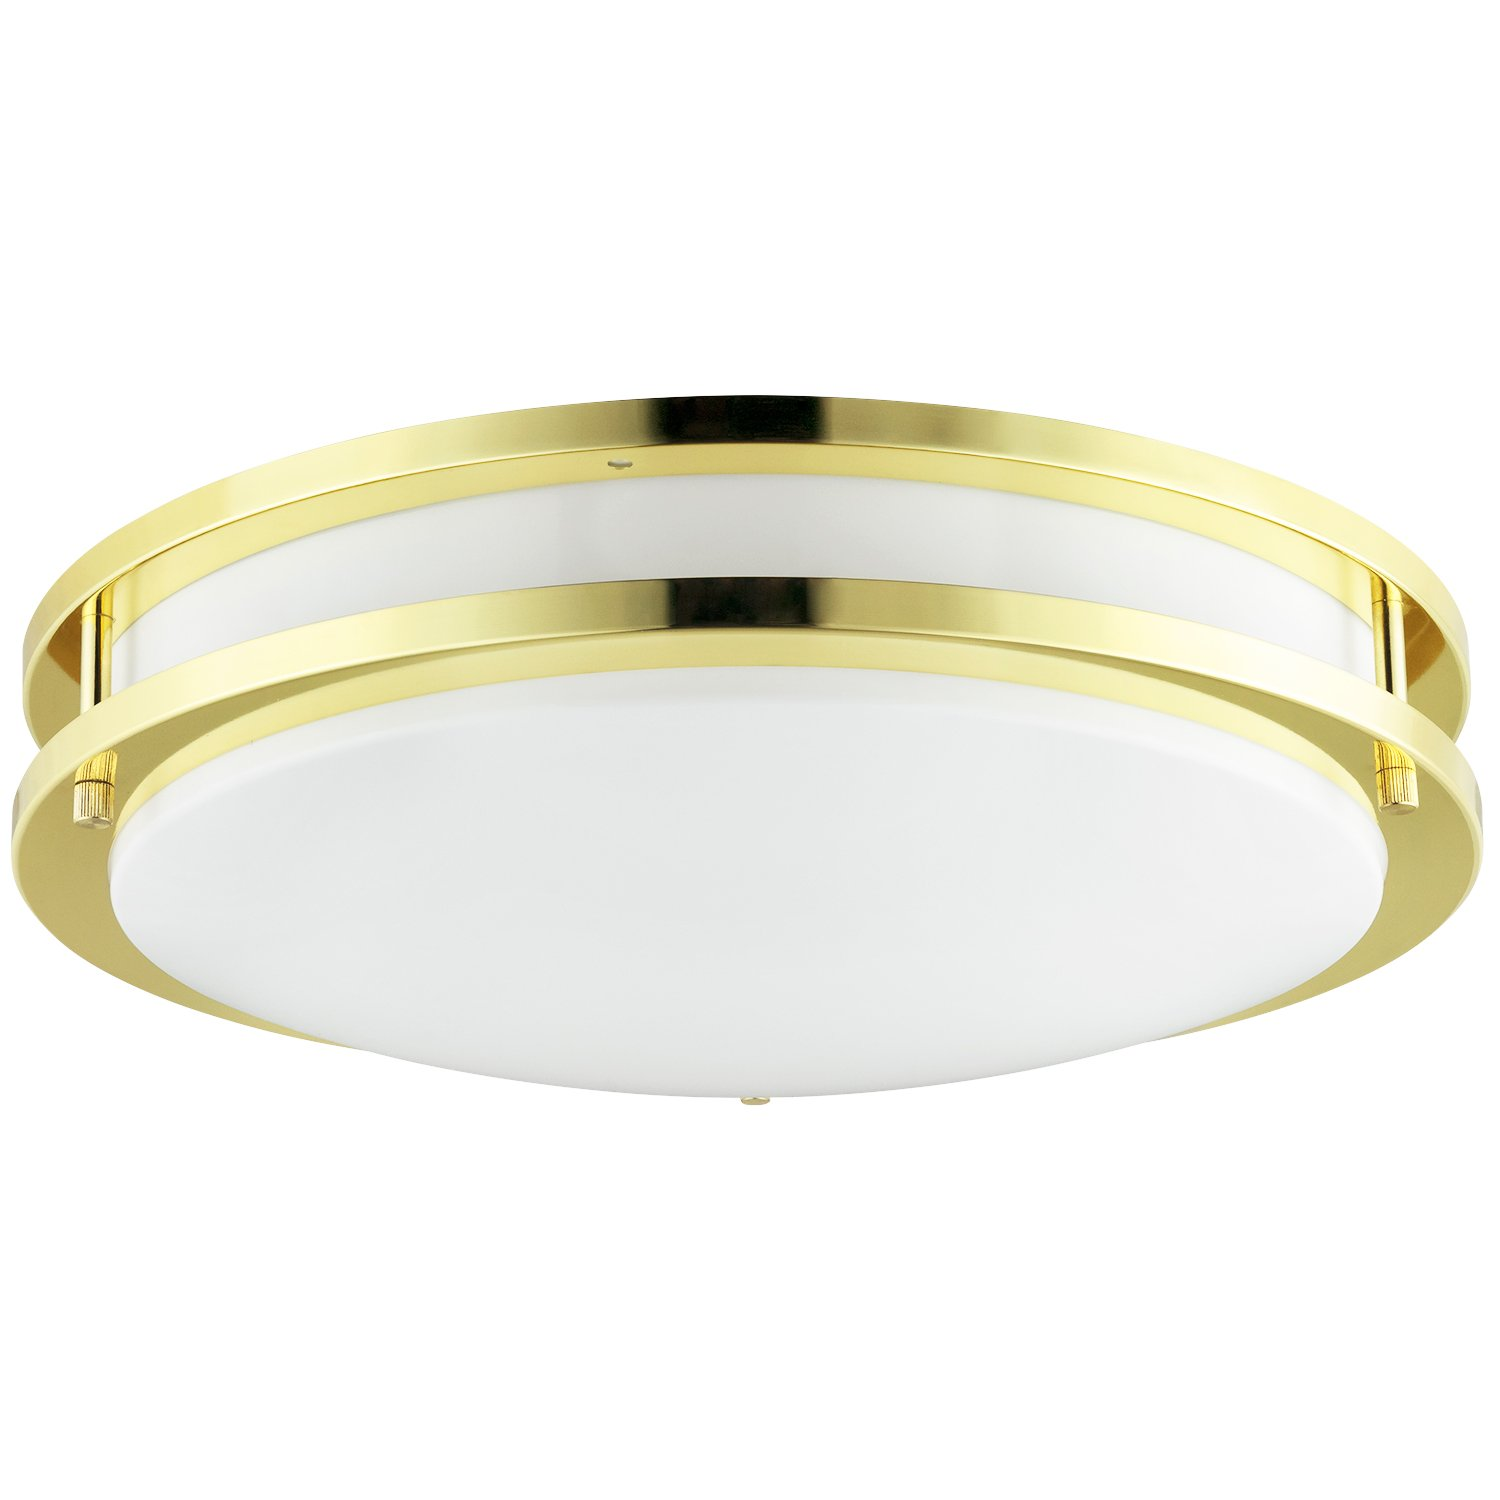 Sunlite DCO12//E//PB 12 Inch Energy Saving Decorative Band Trim Ceiling Fixture Polished Brass Finish with White Lens